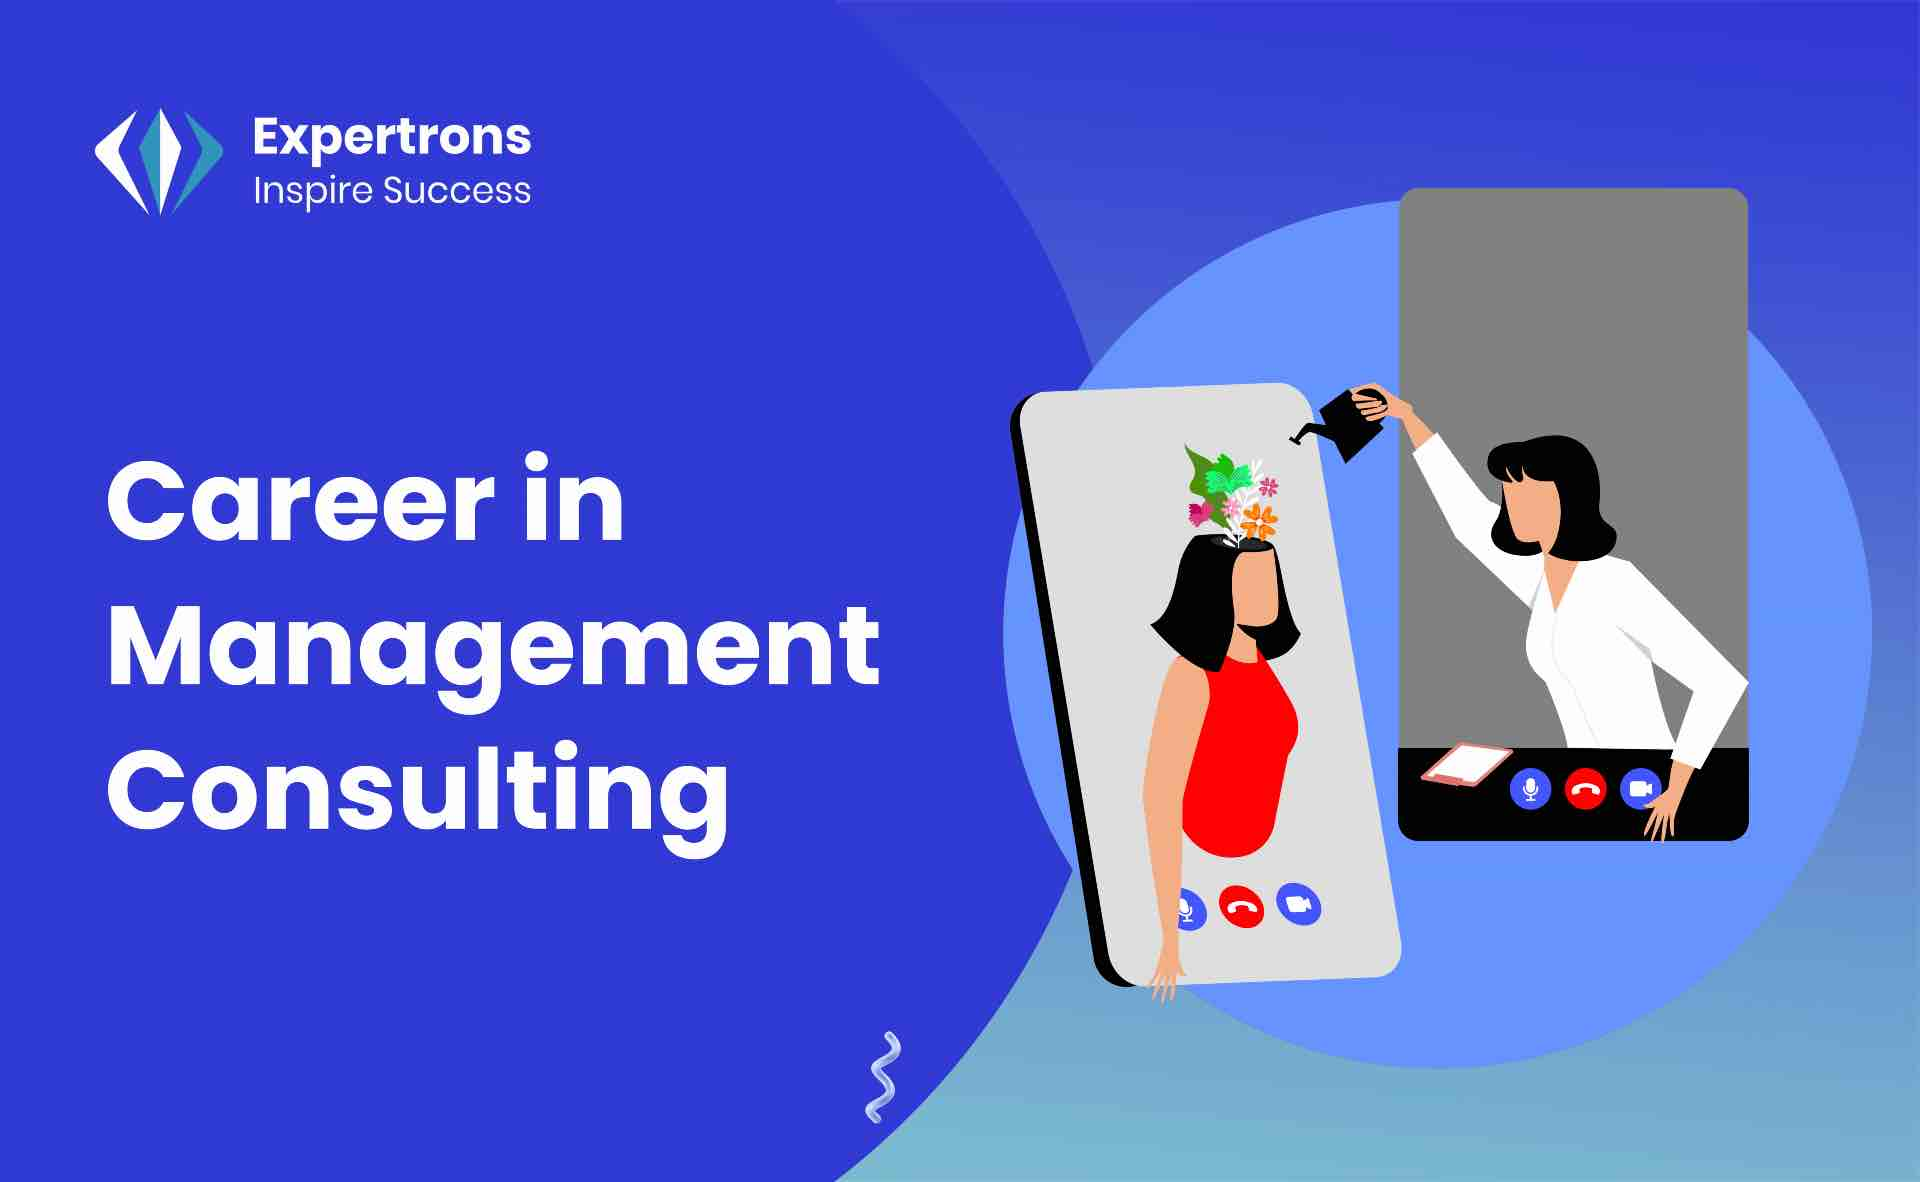 Career in consulting, career in management consulting, consulting career, consuling, consultant, management consultant, business, business management